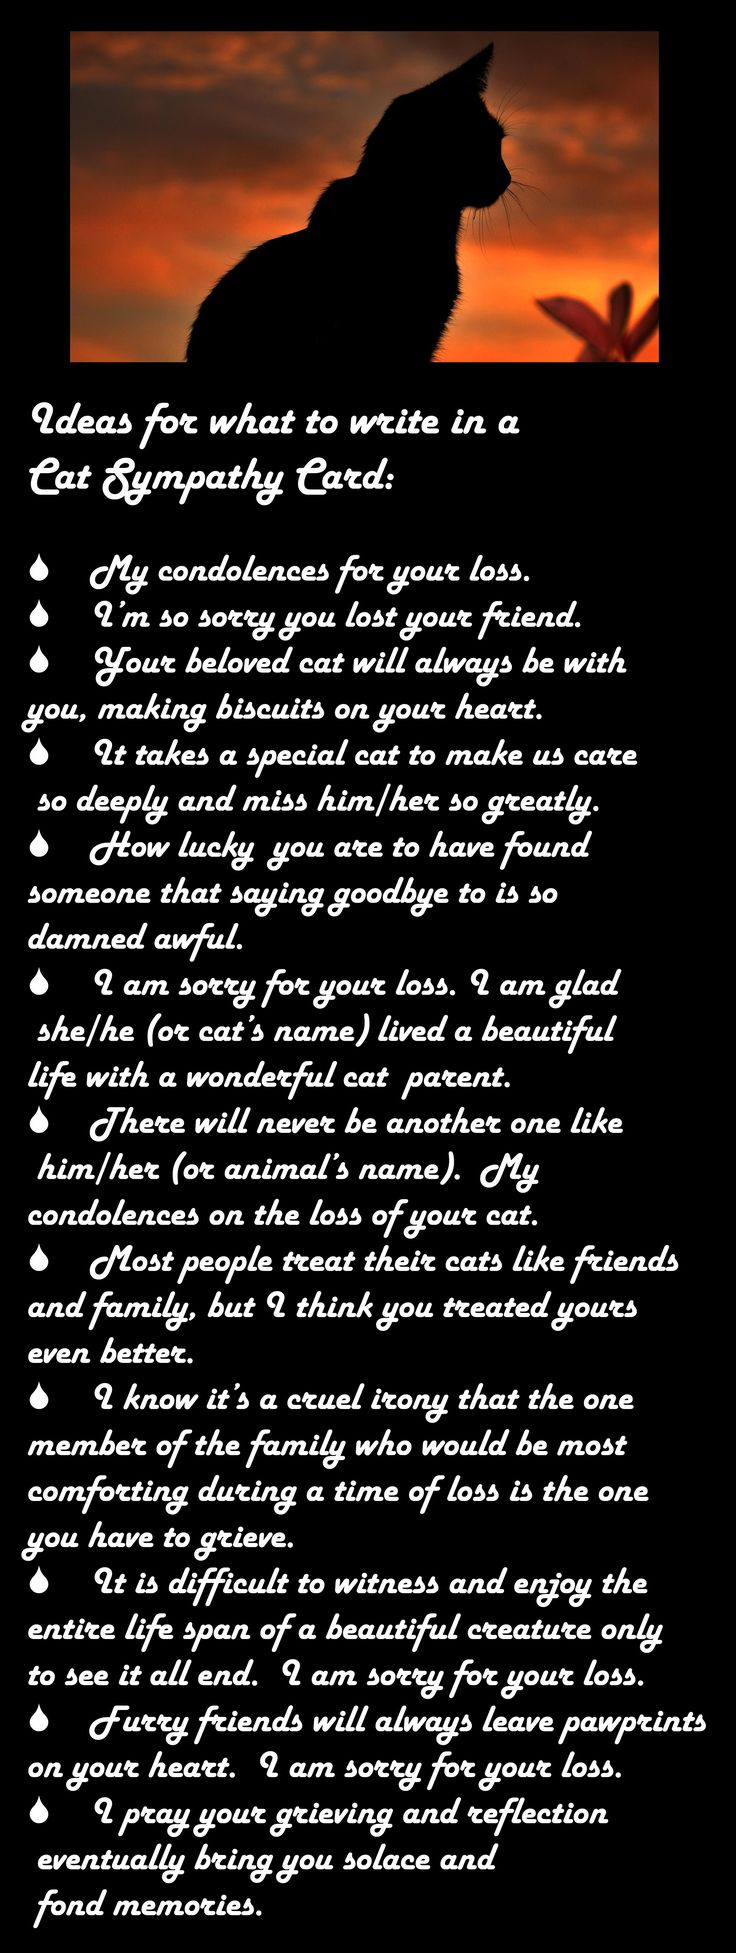 Ideas for what to write on a cat sympathy card.